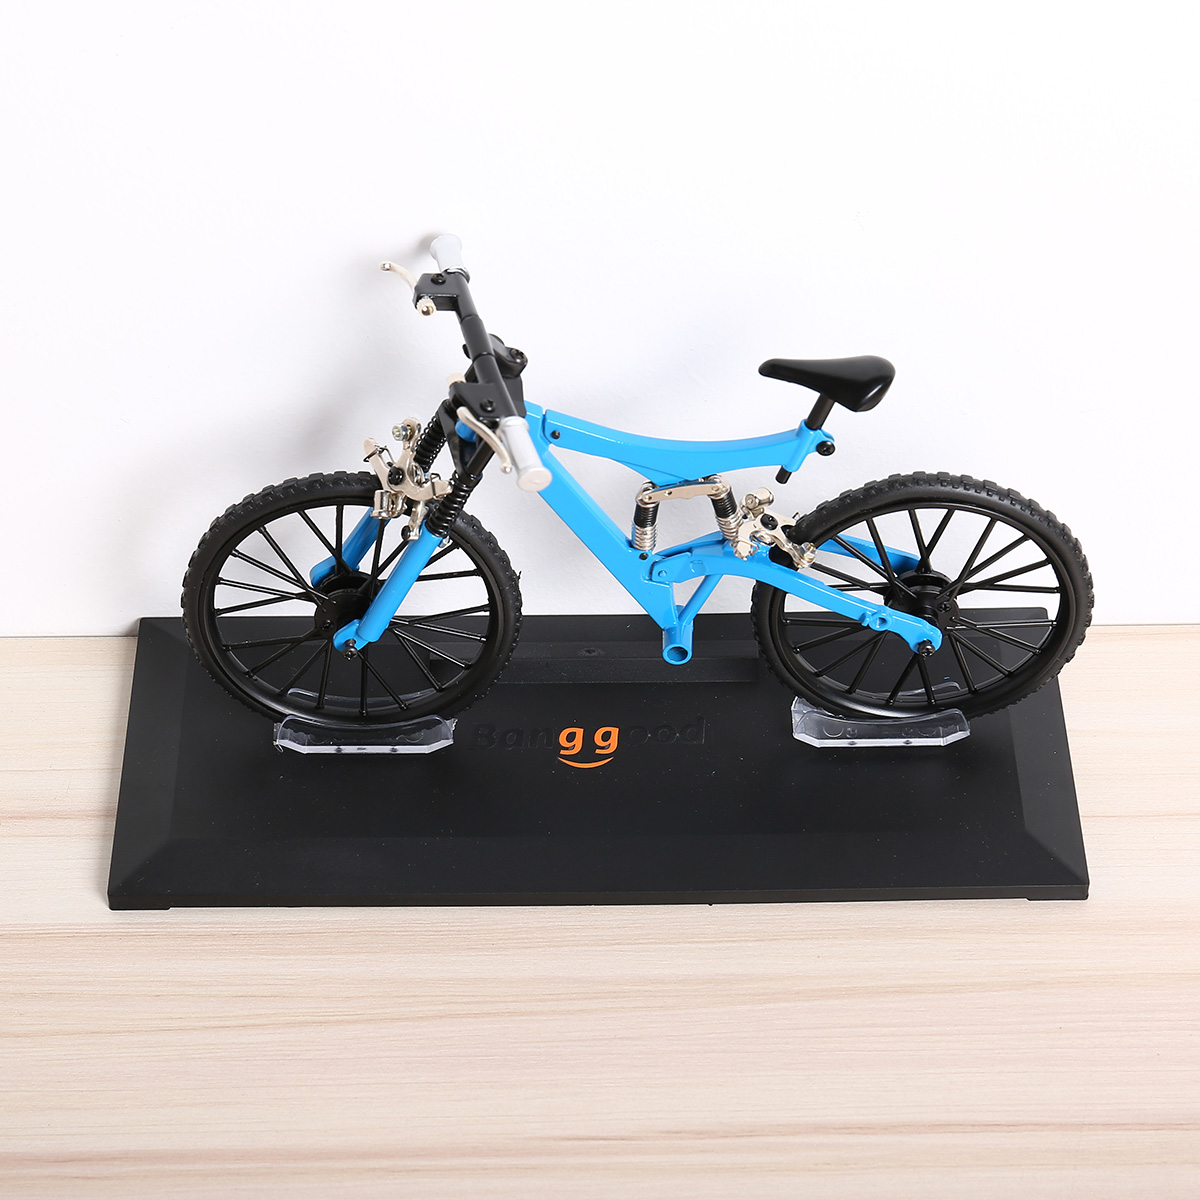 Banggood Bicycle Model Simulation DIY Alloy Mountain/Road Bicycle Set Decoration Gift Model Toys